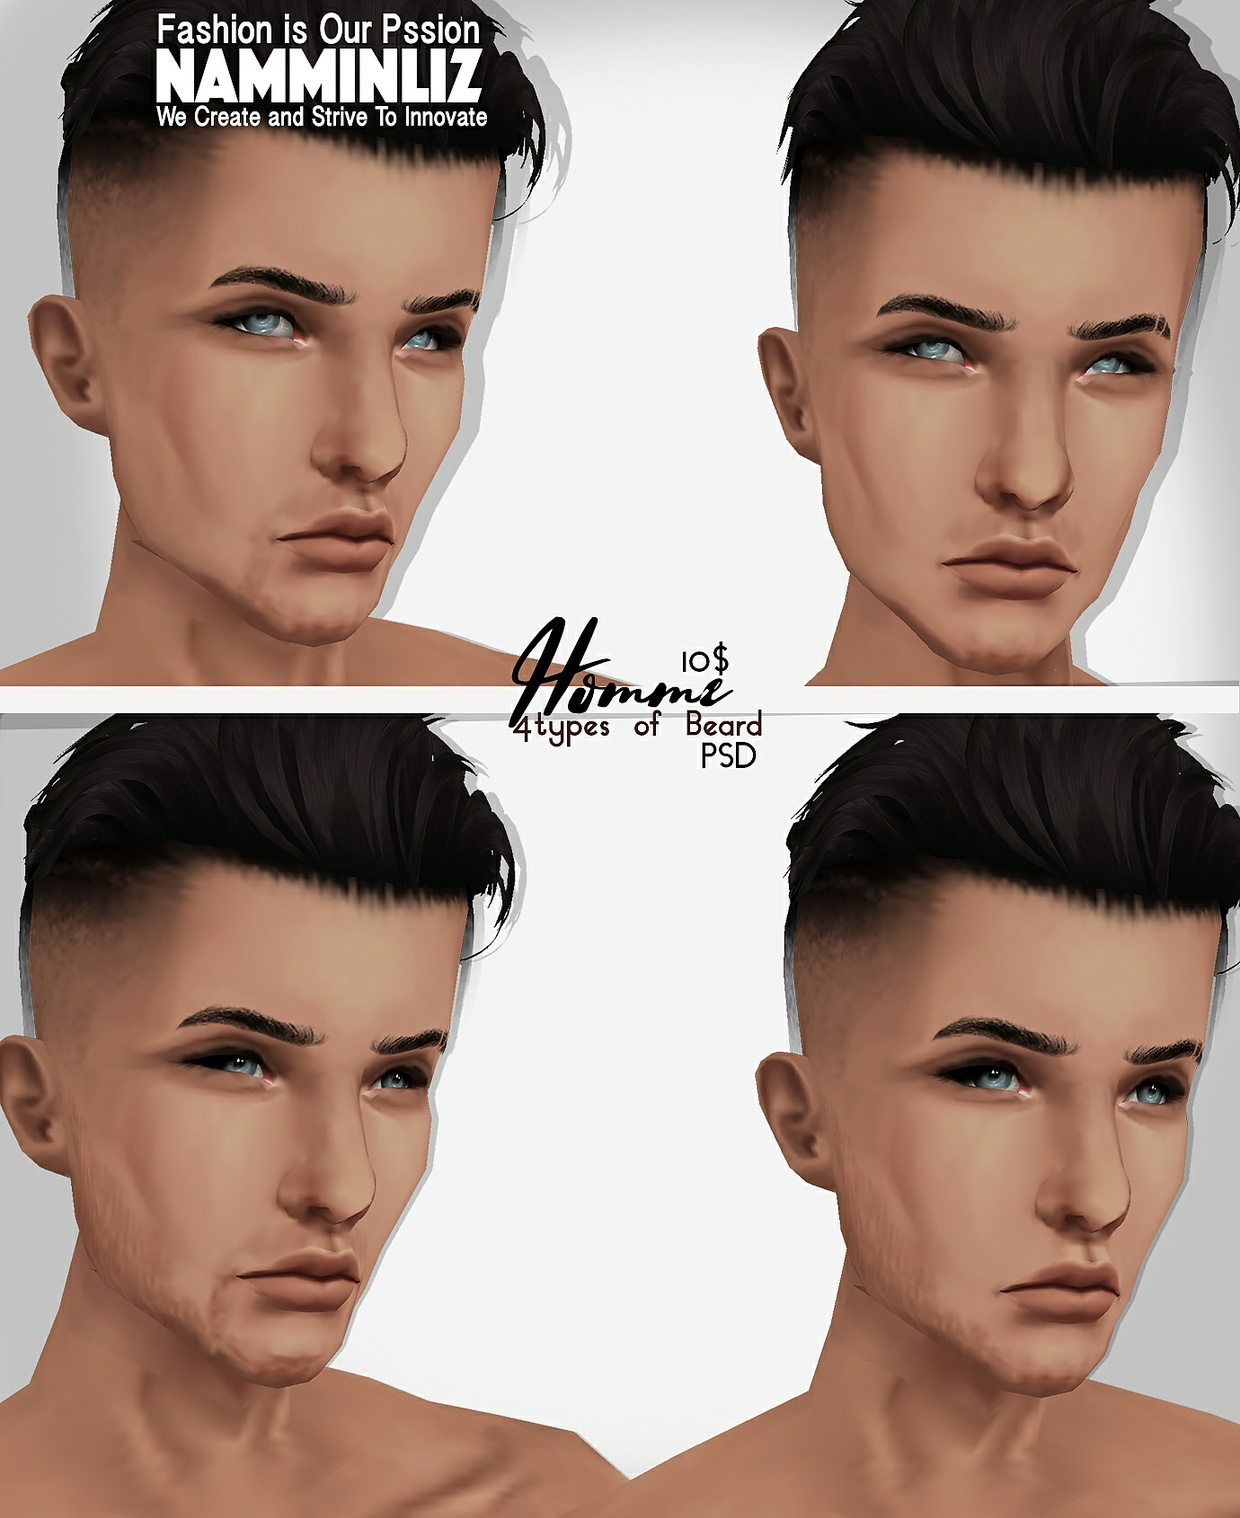 Homme 2 Skin tones PNG + 4 types of Beard PSD